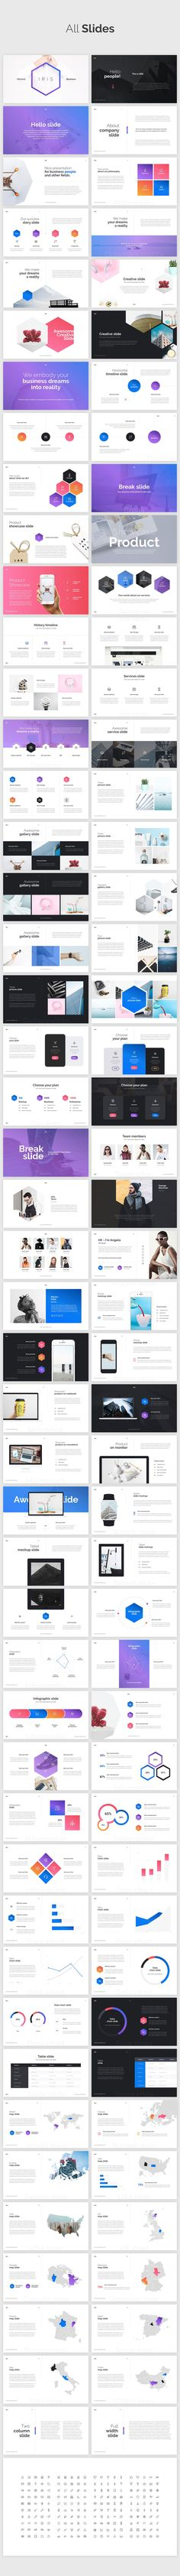 IRIS Minimal PowerPoint Template with bold punches of color including blue purple pink and orange. Subtle gradients and flat design to emulate the latest iOS design guidelines. A great slide presentation template/theme for technology app startups. Cool Web Design, Design Café, Design Logo, Slide Design, Layout Design, Flat Design, Graphic Design, Book Design, Presentation Deck